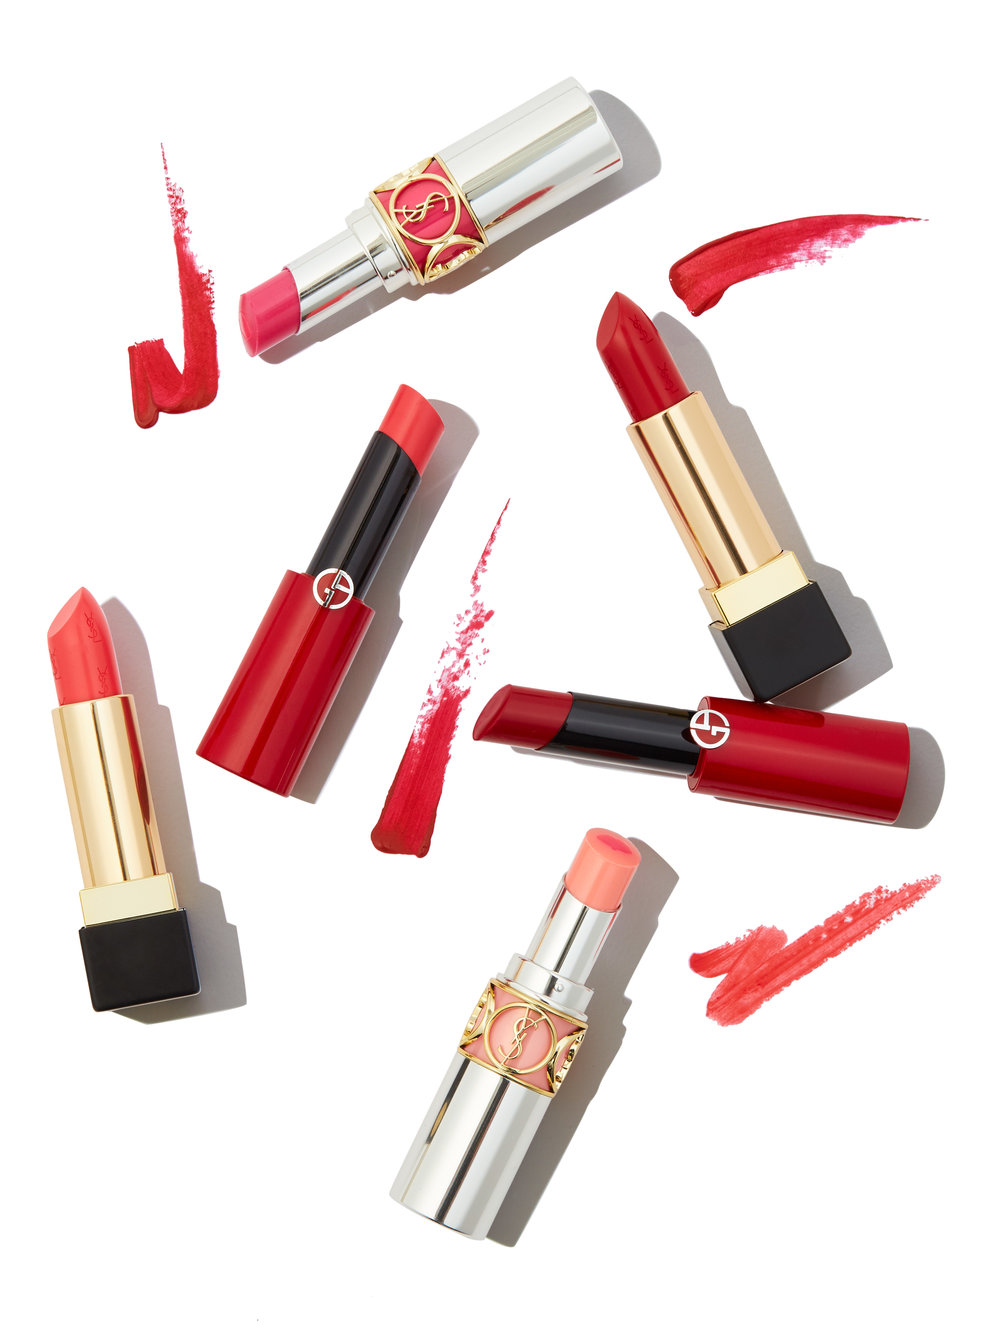 061218_SAKS_S_NATIONALLIPSTICKDAY_GROUPSHOT2.jpg